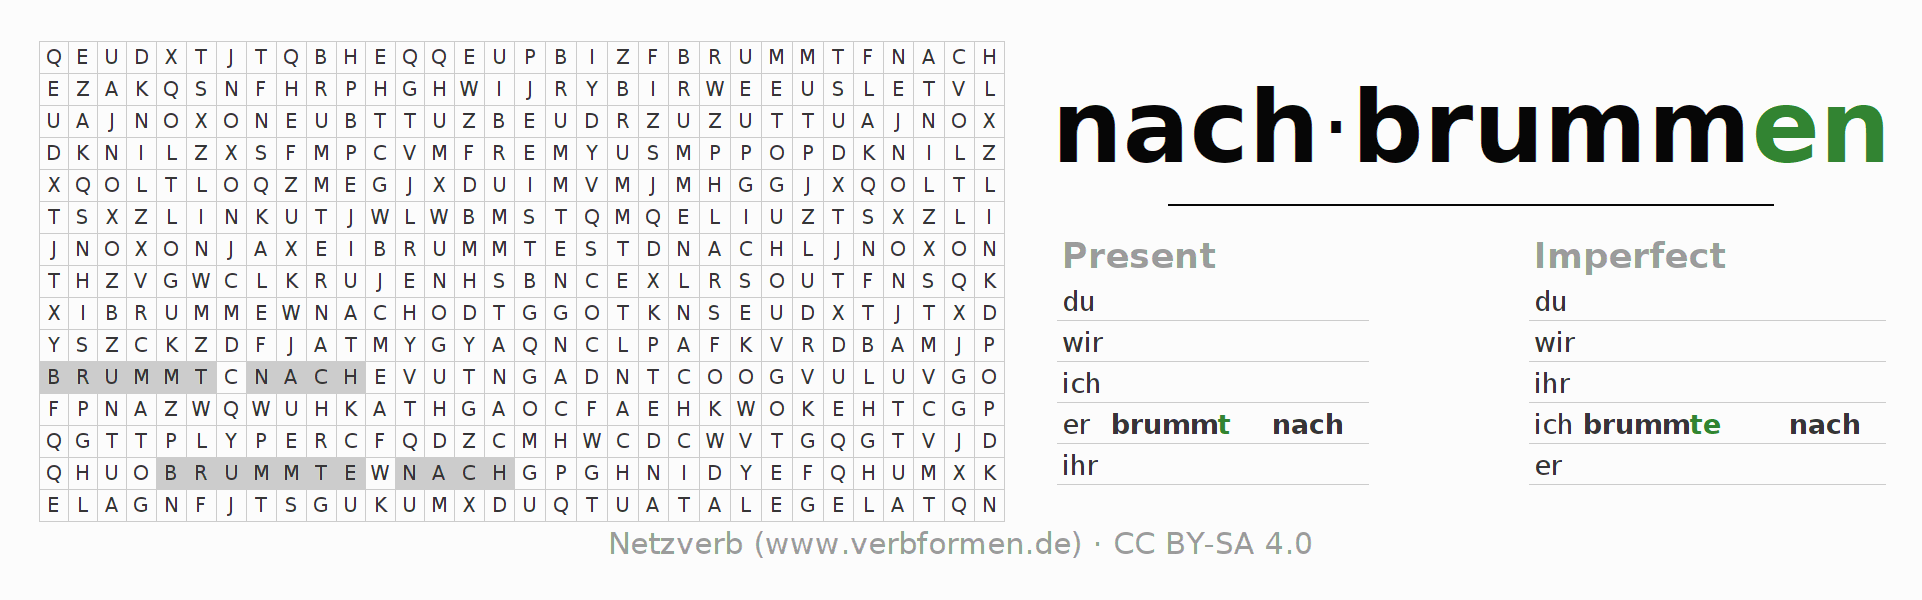 Word search puzzle for the conjugation of the verb nachbrummen